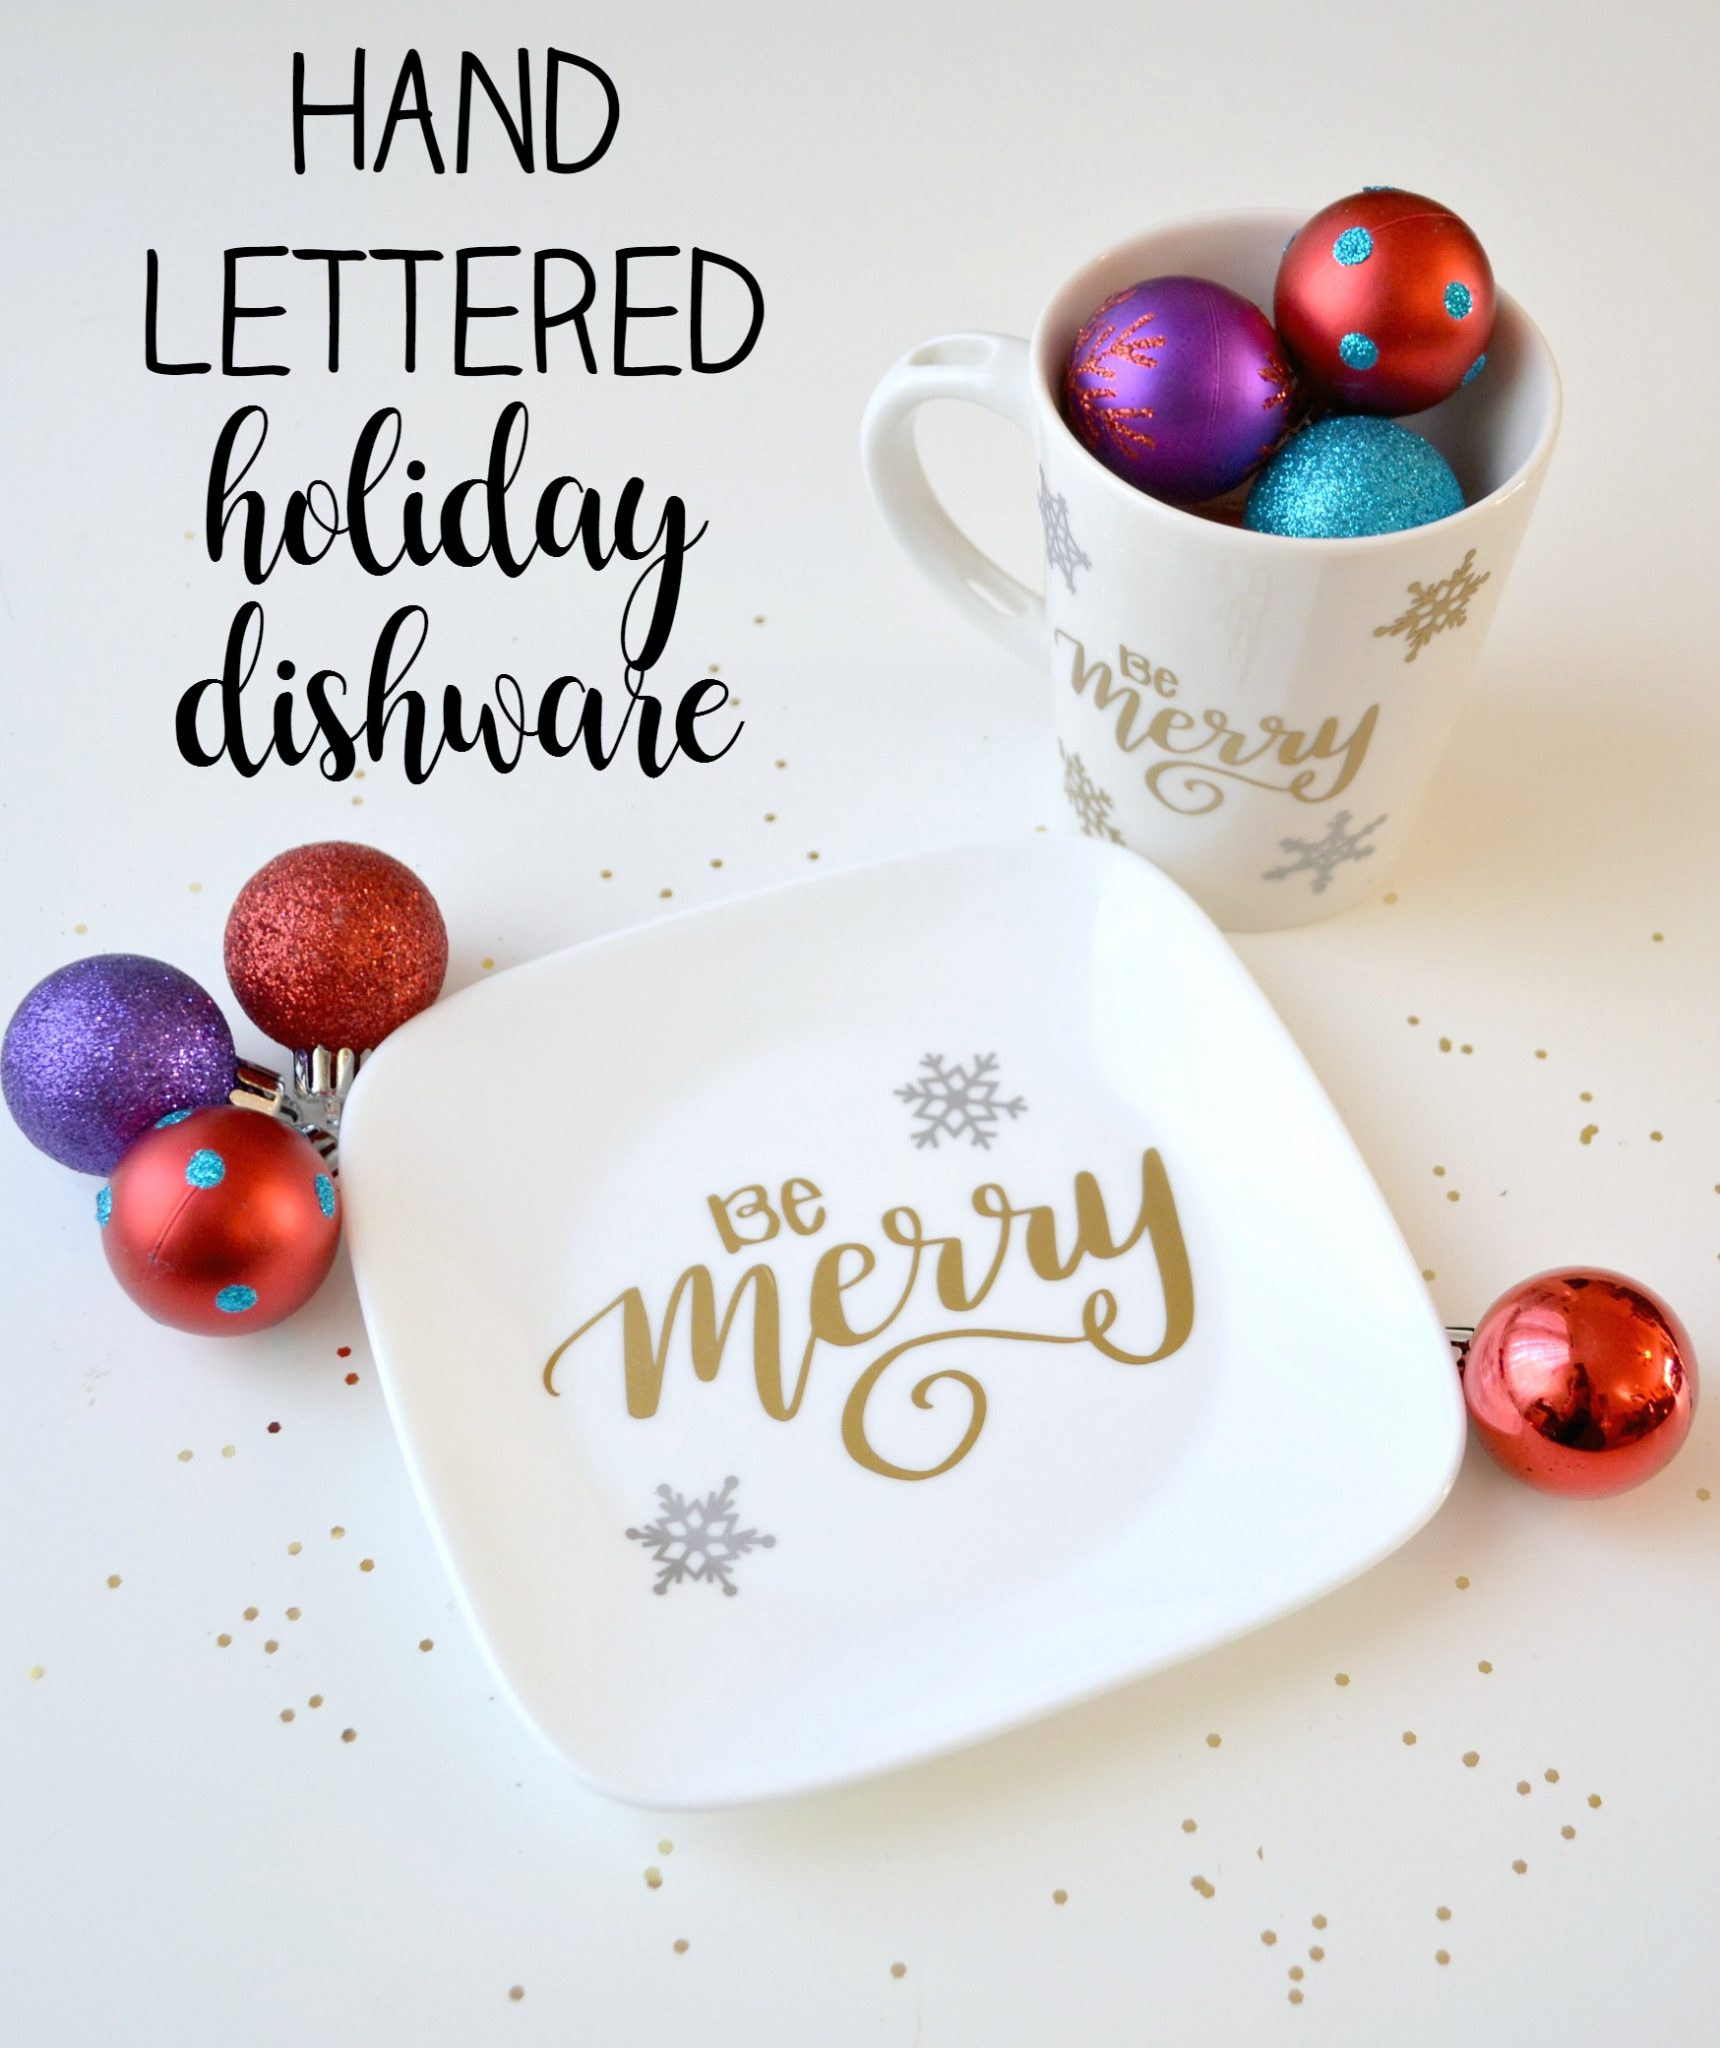 Hand Lettered Holiday Dishware A Silhouette Cameo 3 Giveaway Amy Latta Creations